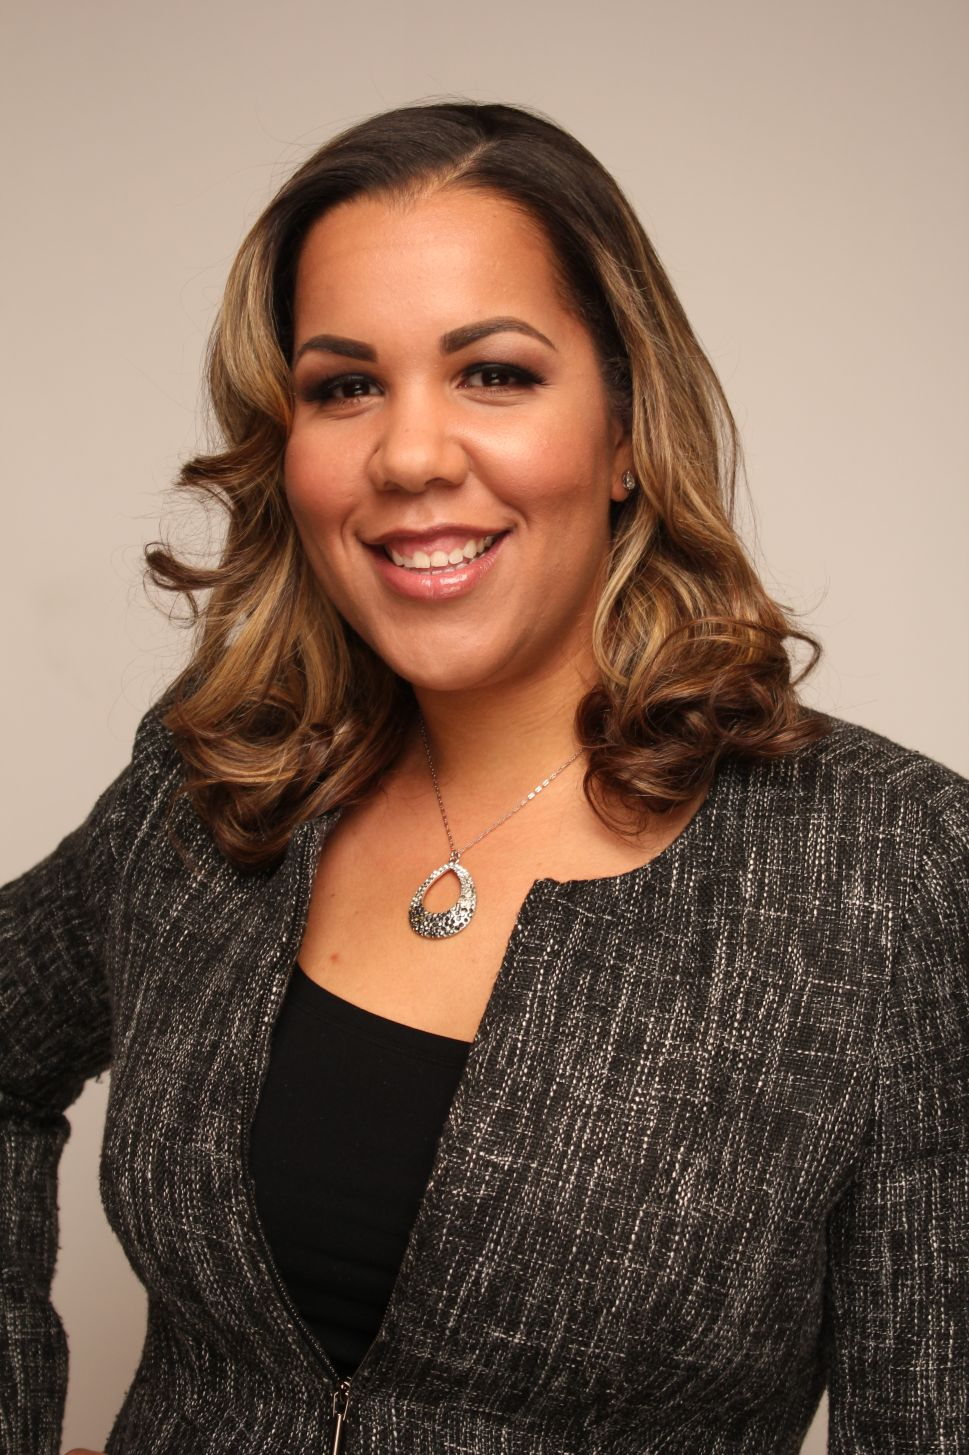 Sarah Jones Leaving U.S. Rep. Payne's Office for Job with Cablevision